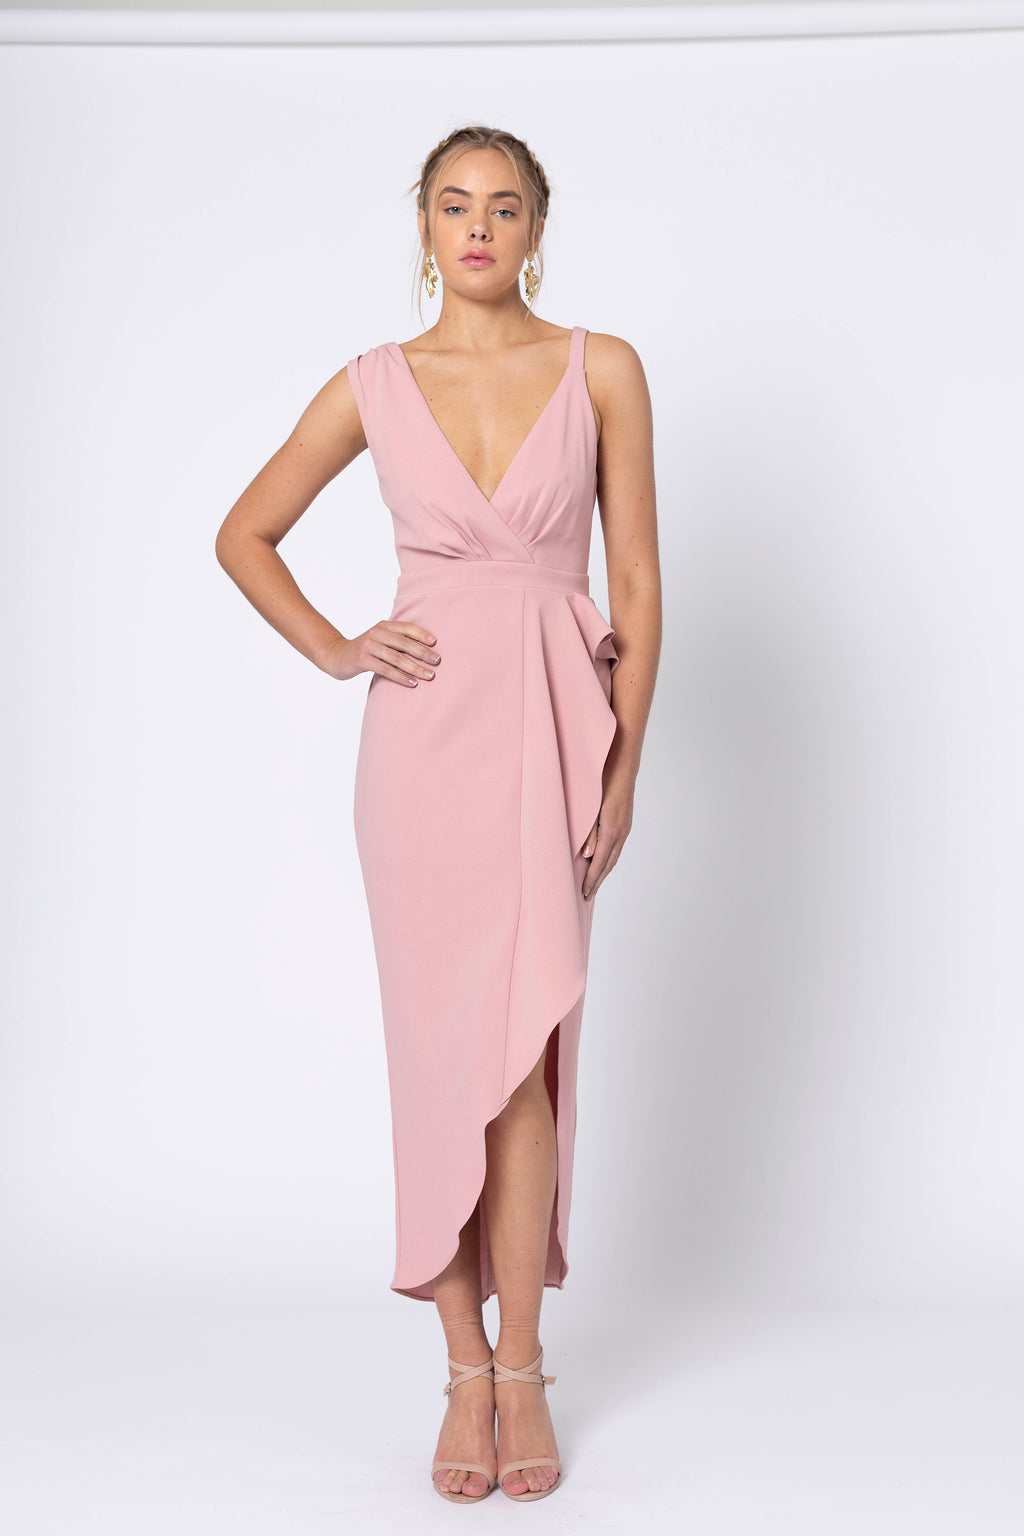 Besos Hale Dress